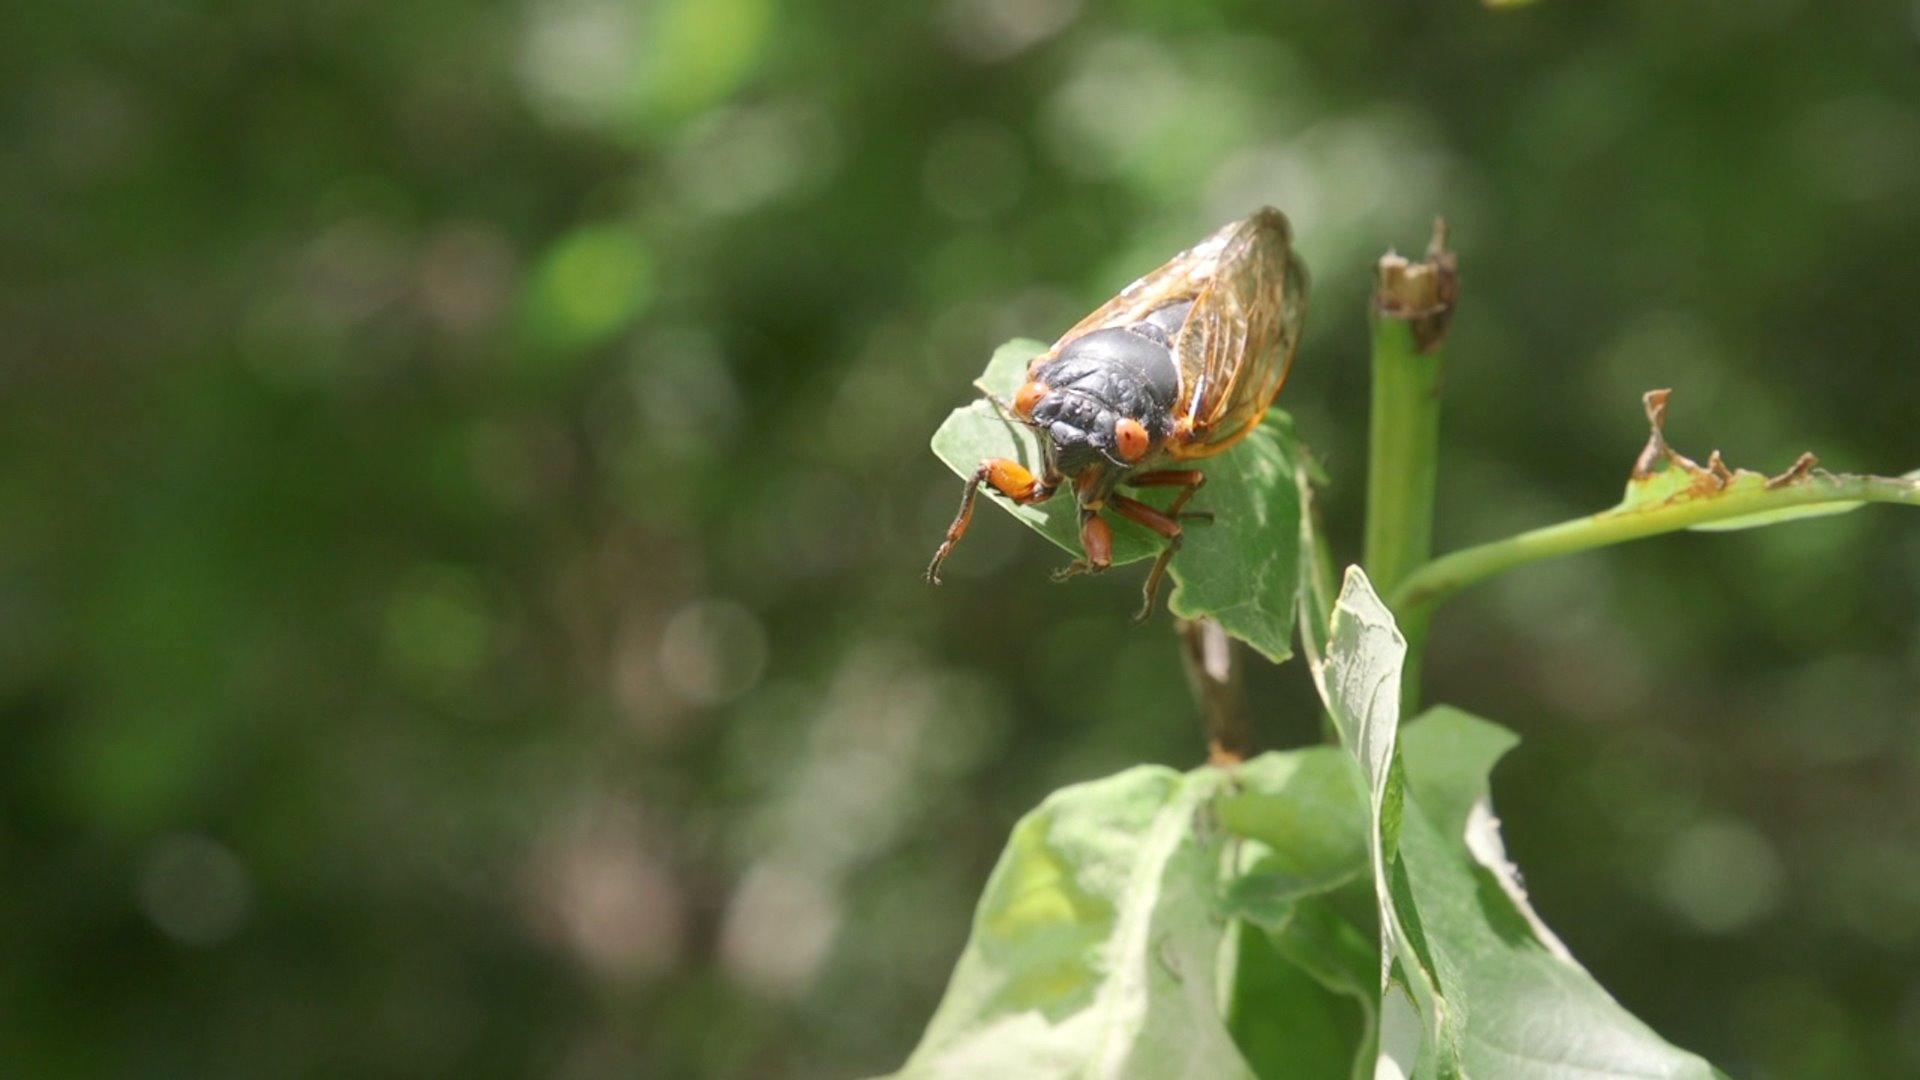 17-year cicadas making an appearance in Ararat, Virginia